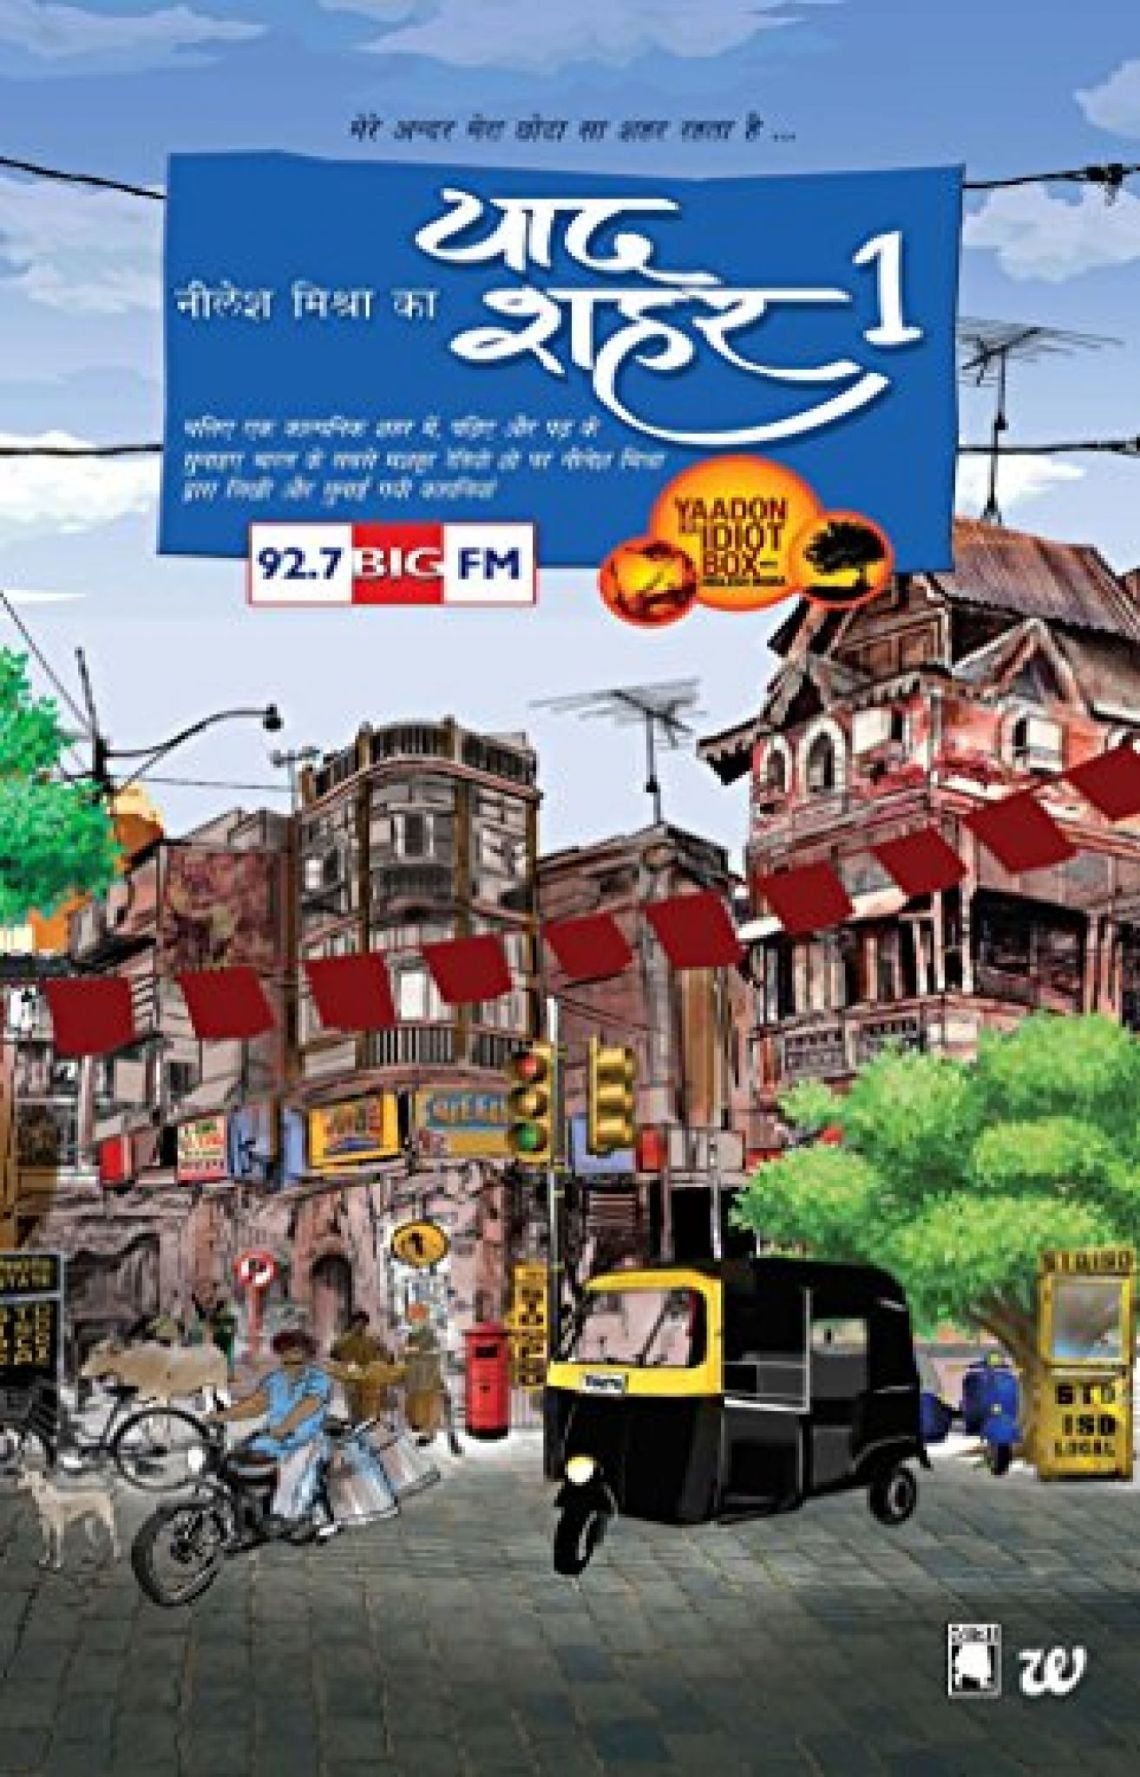 Buy Yaad Shehar, Vol 1 Book Online at Low Prices in India | Yaad Shehar, Vol 1 Reviews & Ratings - Amazon.in